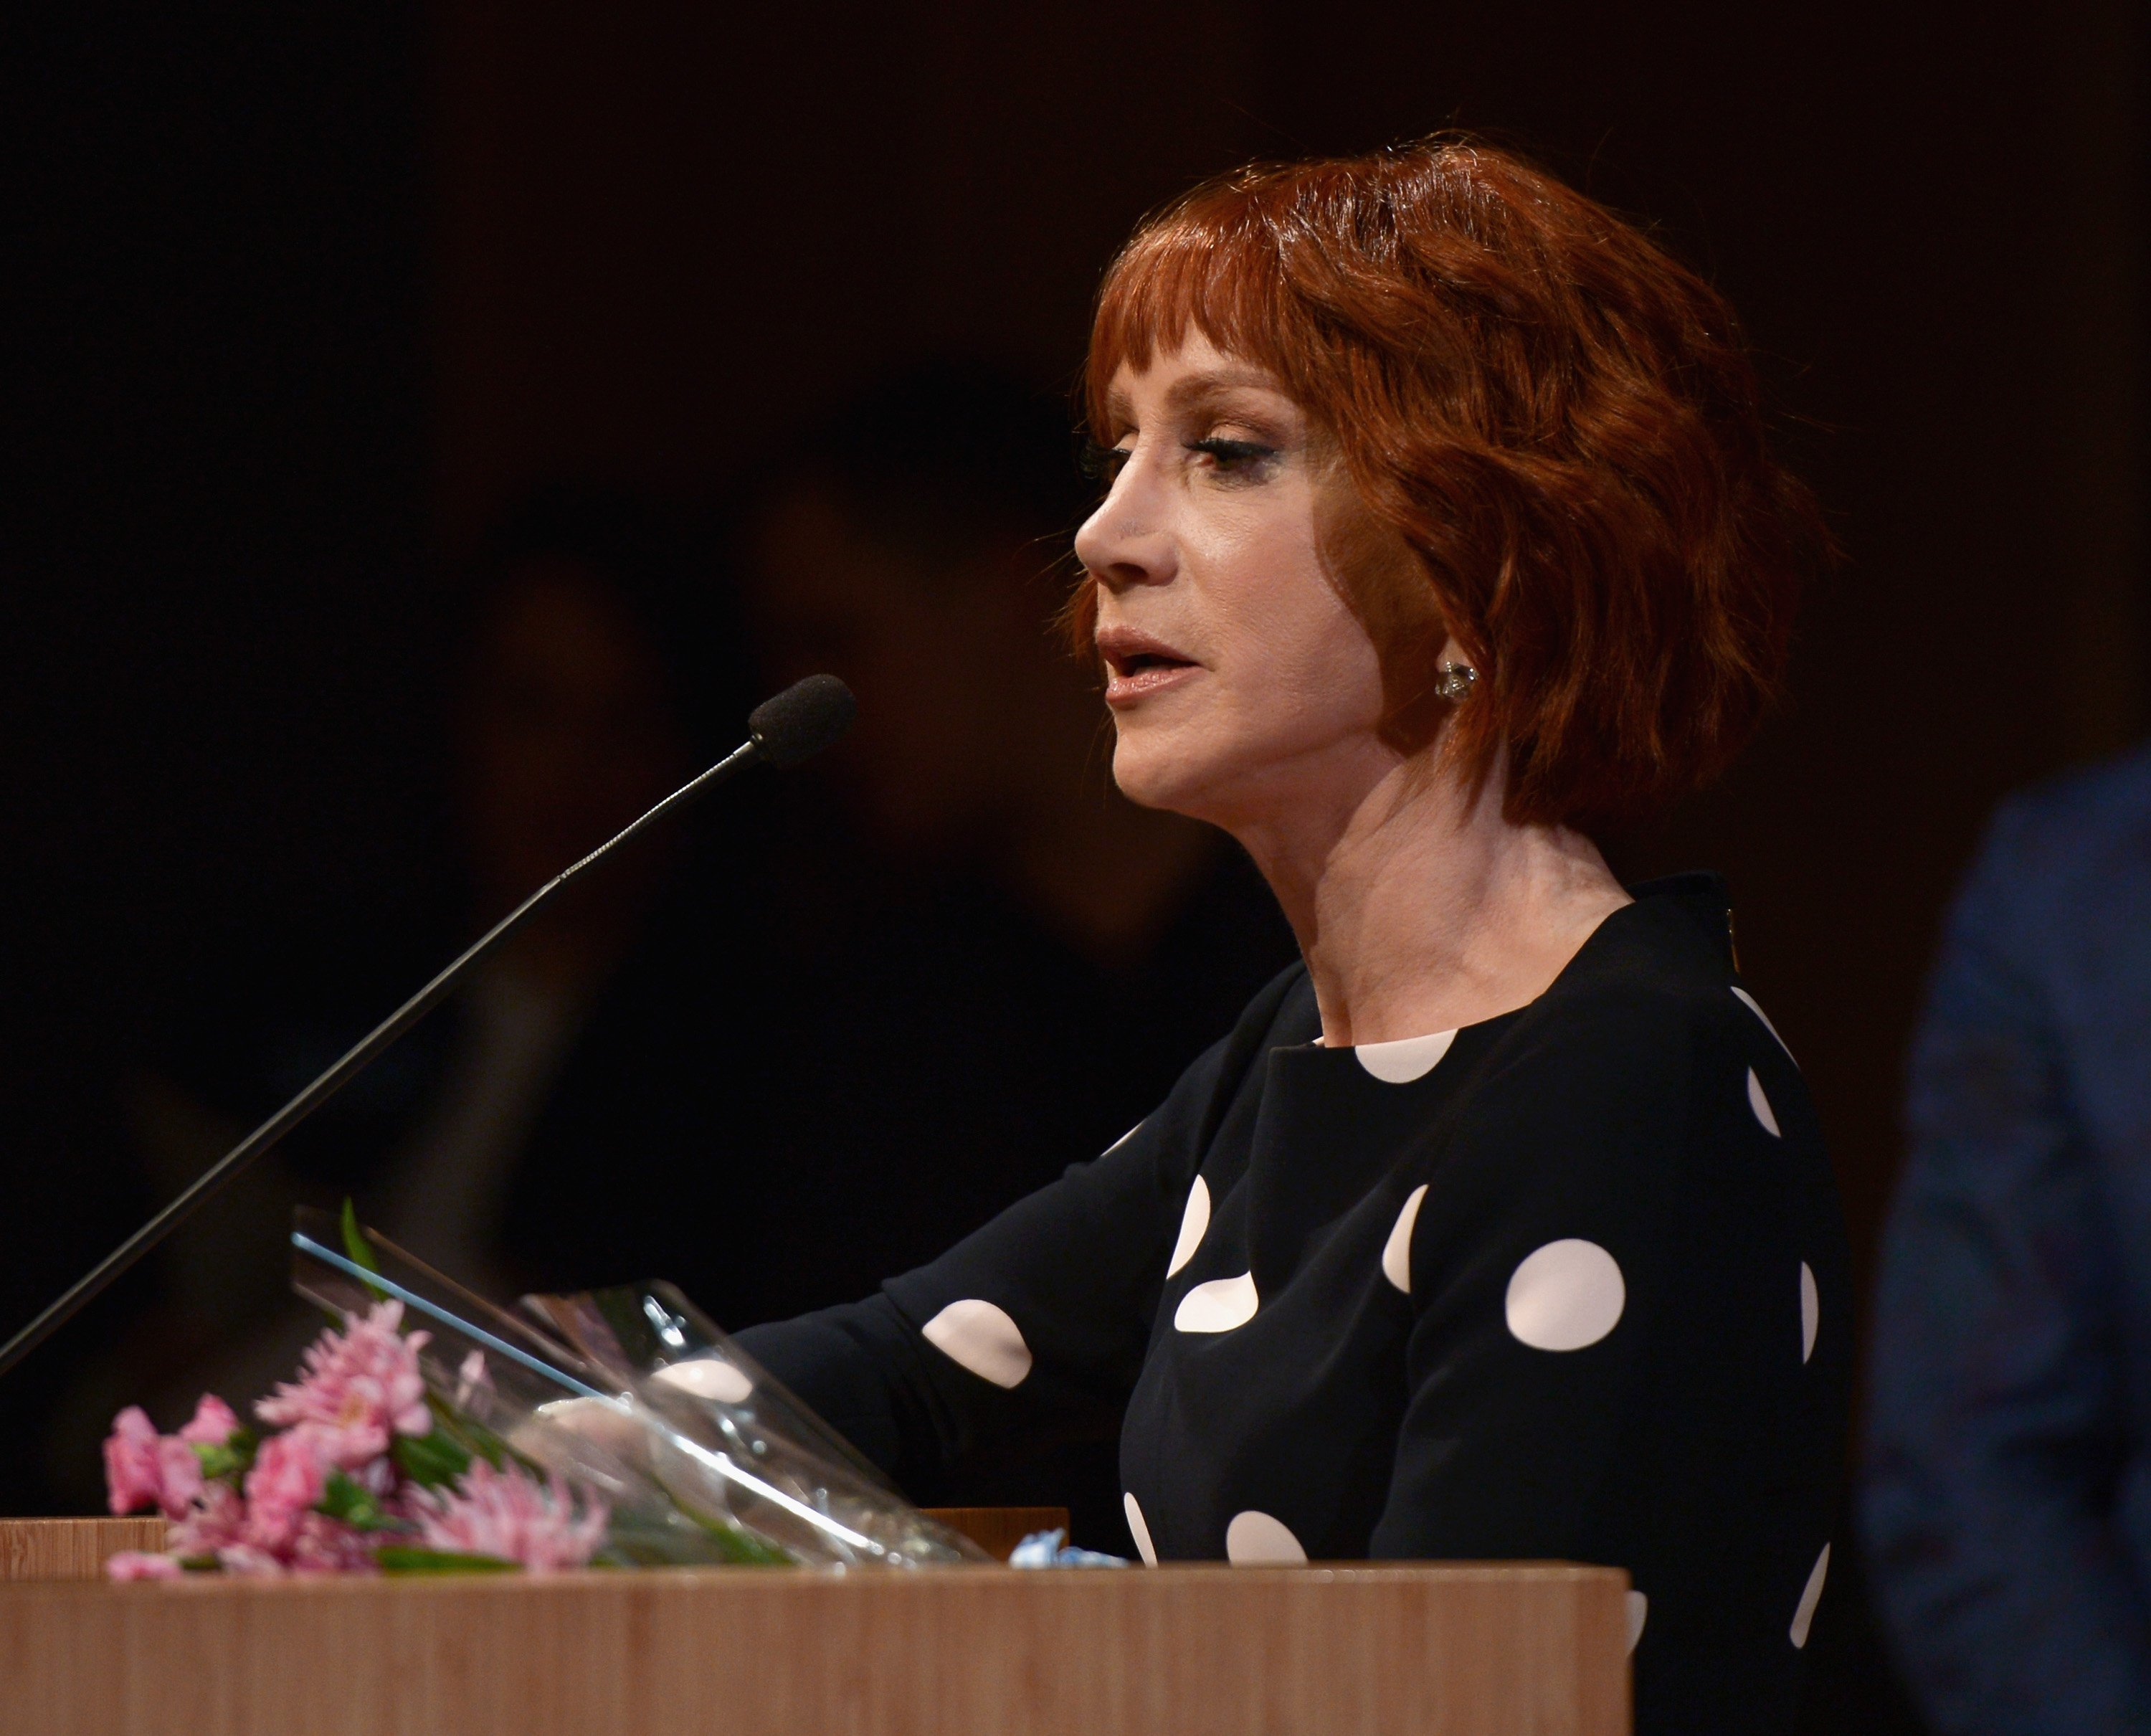 Comedian Kathy Griffin attends the West Hollywood Rainbow Key Awards at City of West Hollywood's Council Chambers on June 5, 2018 in West Hollywood, California   Photo: Getty Images